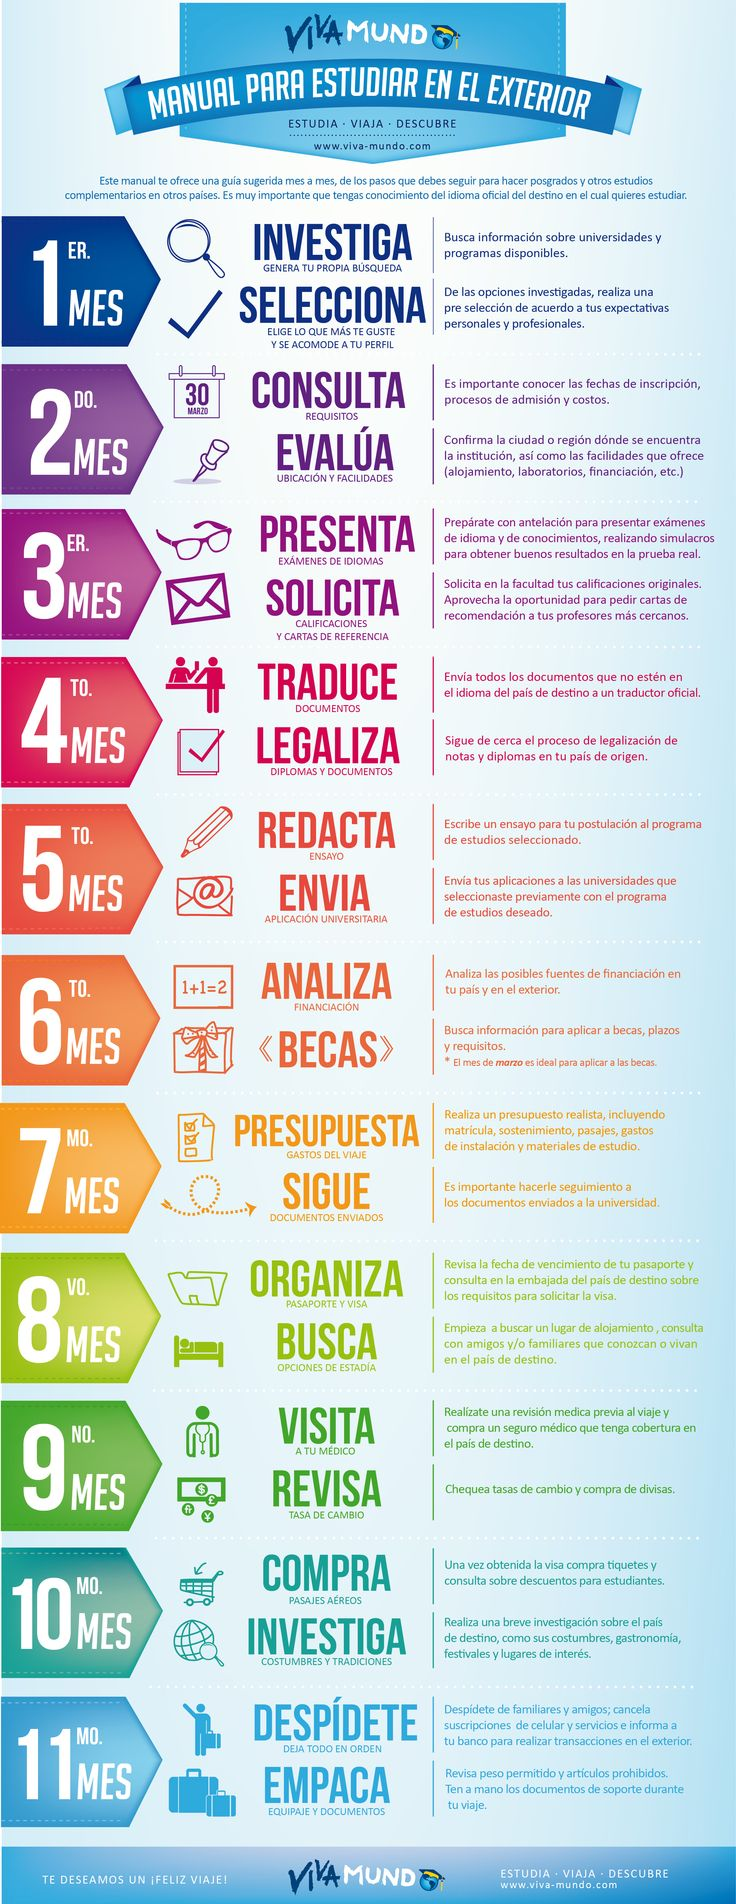 Manual para estudiar en el exterior #infografia #infographic #education